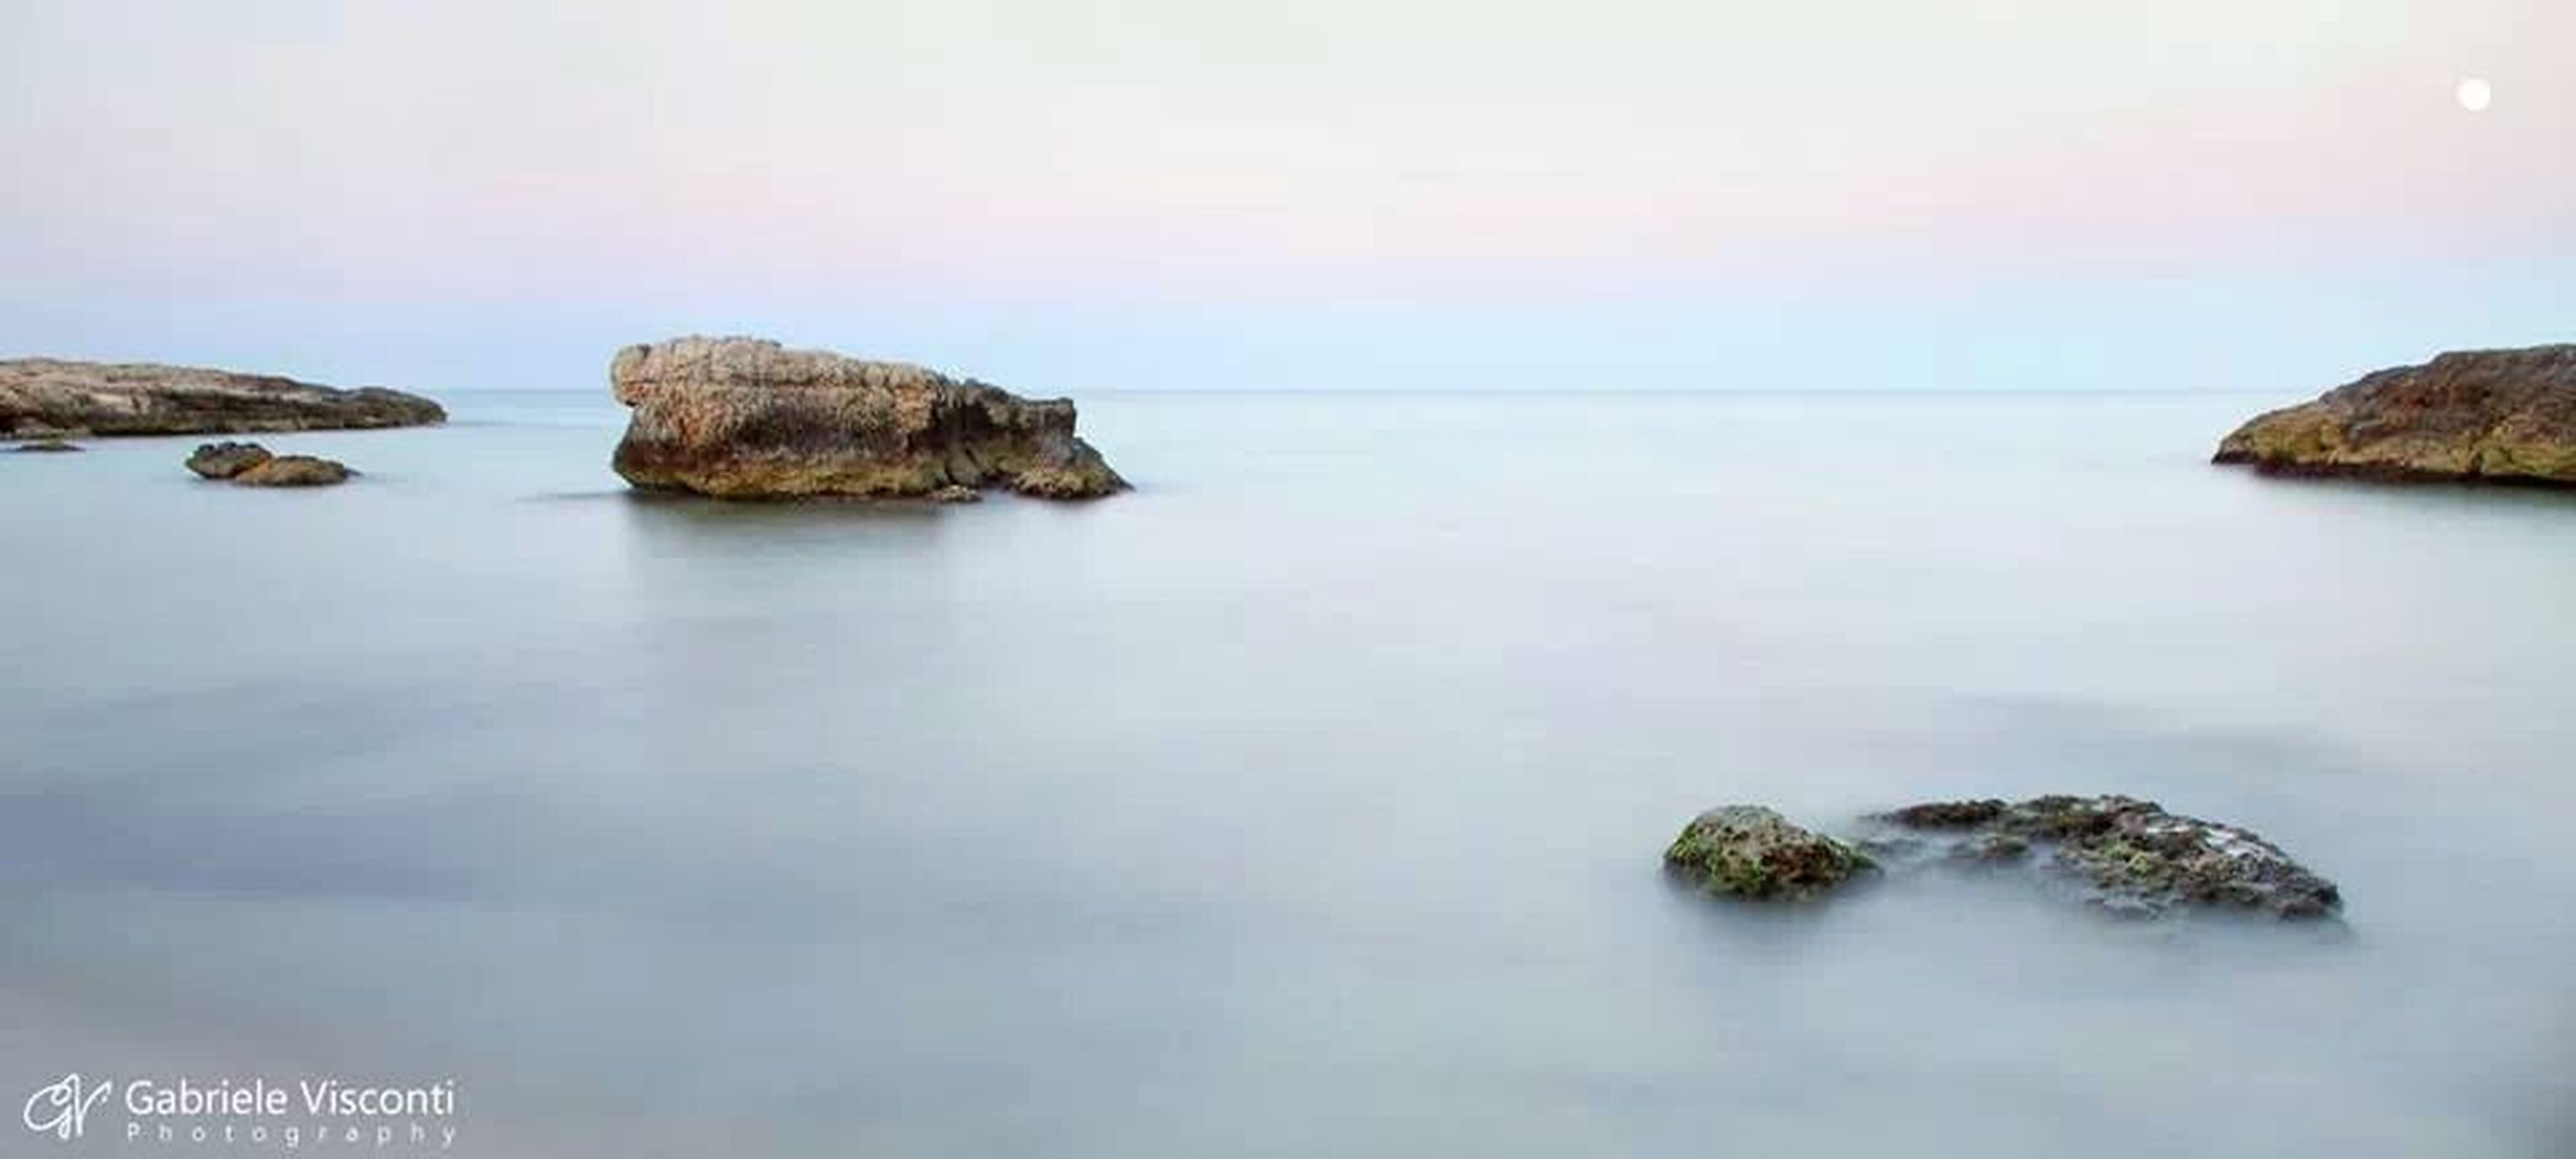 water, sea, tranquil scene, tranquility, scenics, horizon over water, beauty in nature, rock - object, nature, rock formation, sky, waterfront, idyllic, rock, reflection, calm, clear sky, no people, outdoors, non-urban scene